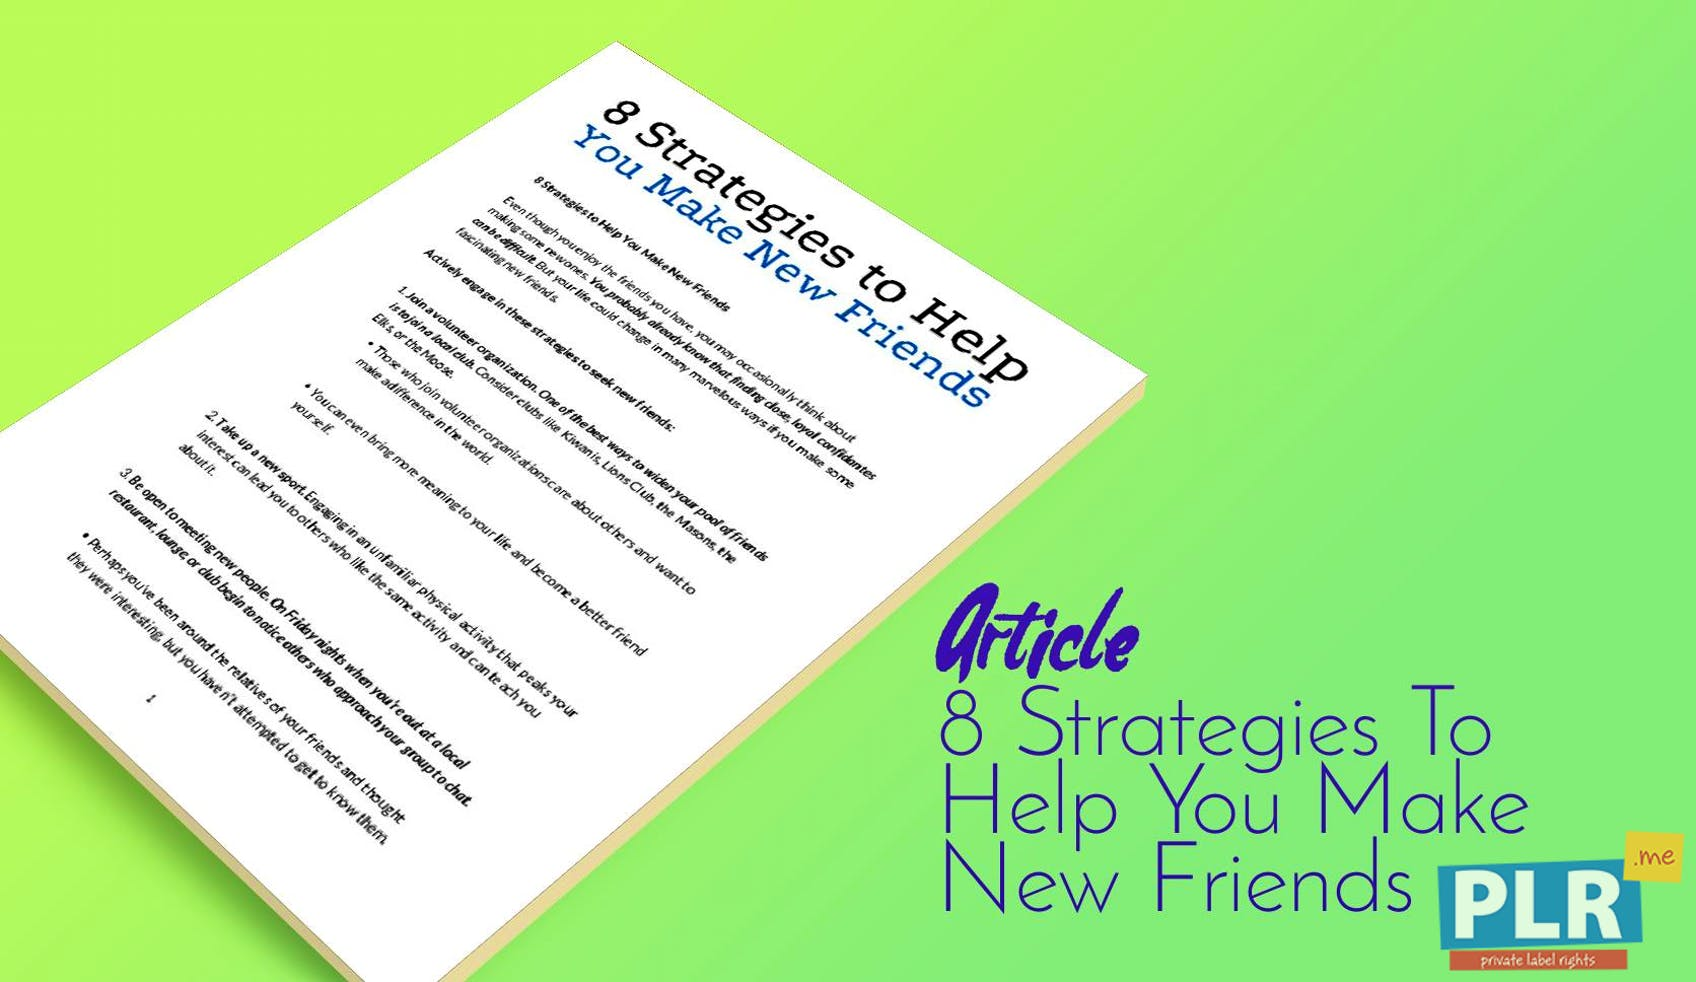 8 Strategies To Help You Make New Friends